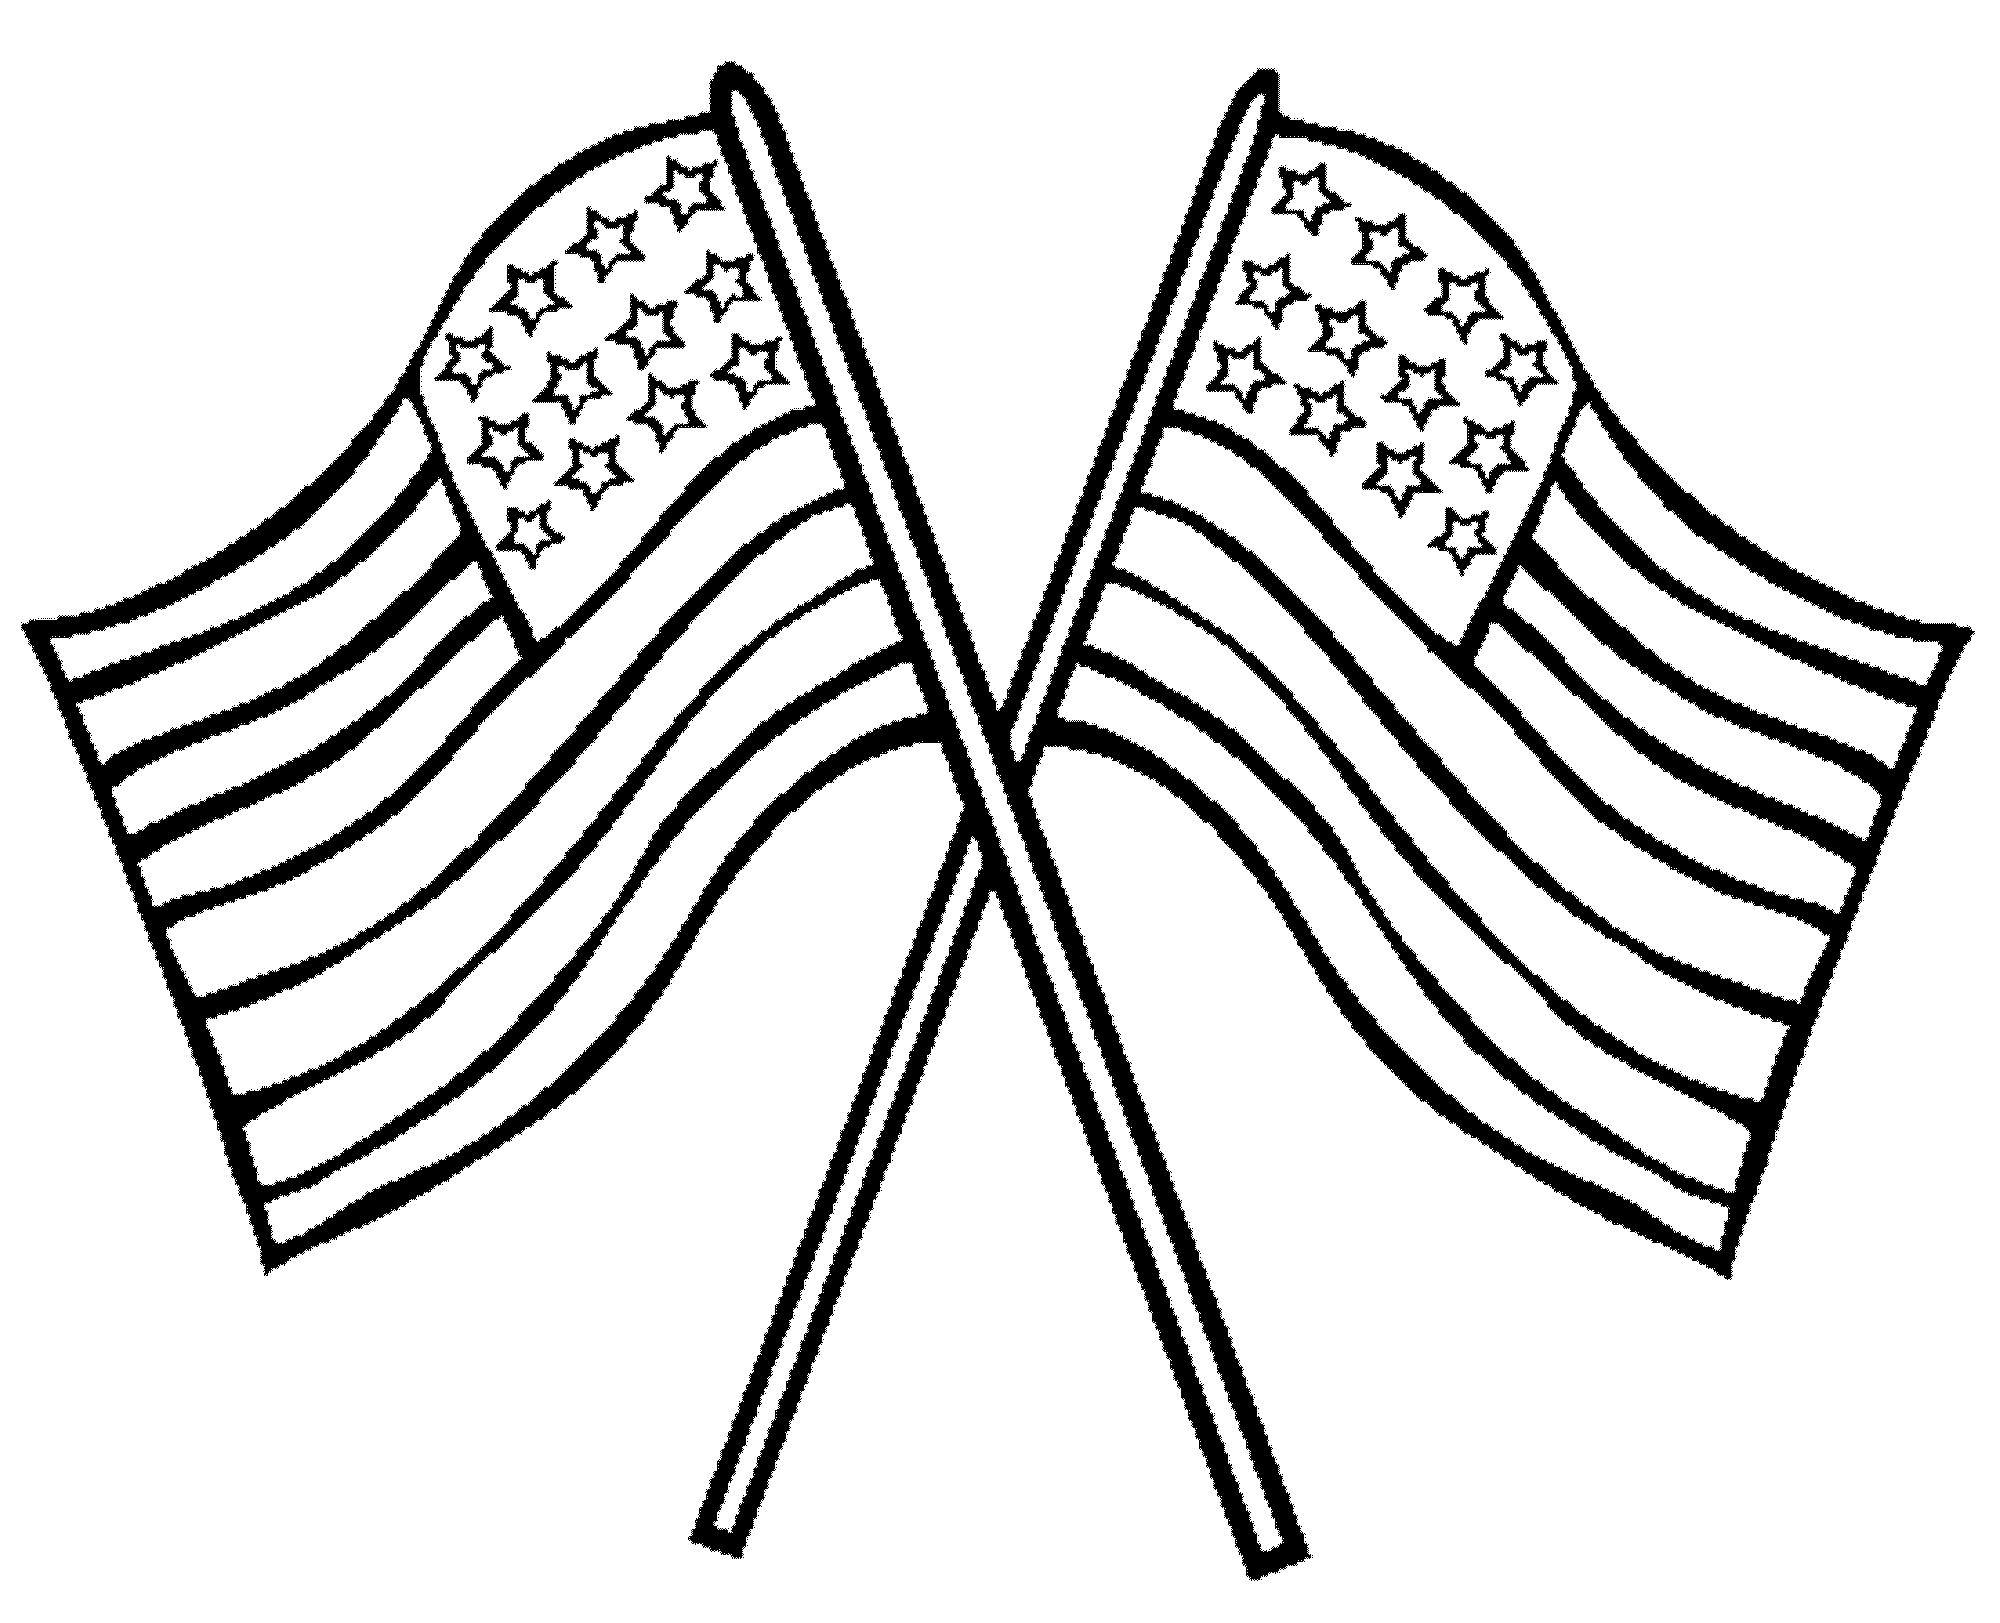 coloring flags american flag coloring pages best coloring pages for kids coloring flags 1 1